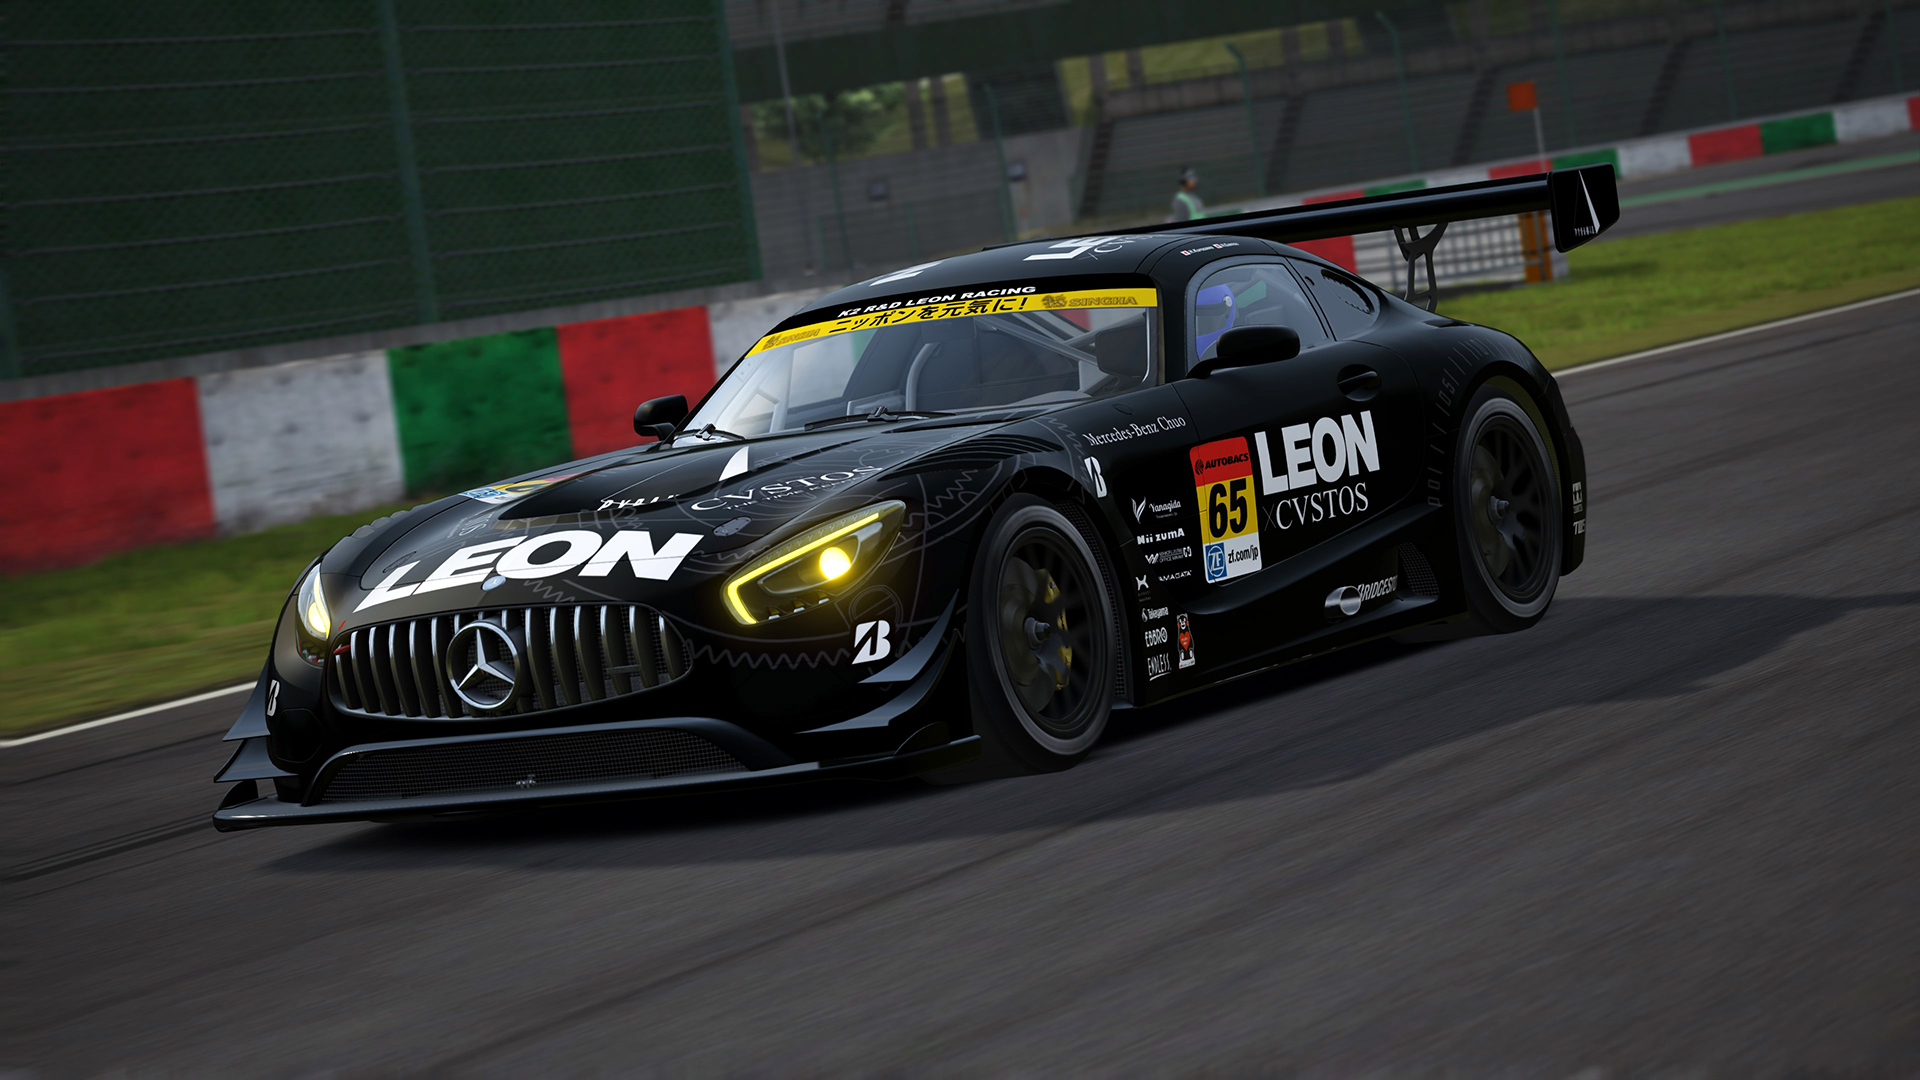 Screenshot_ks_mercedes_amg_gt3_suzuka_circuit_28-2-117-16-29-56.jpg